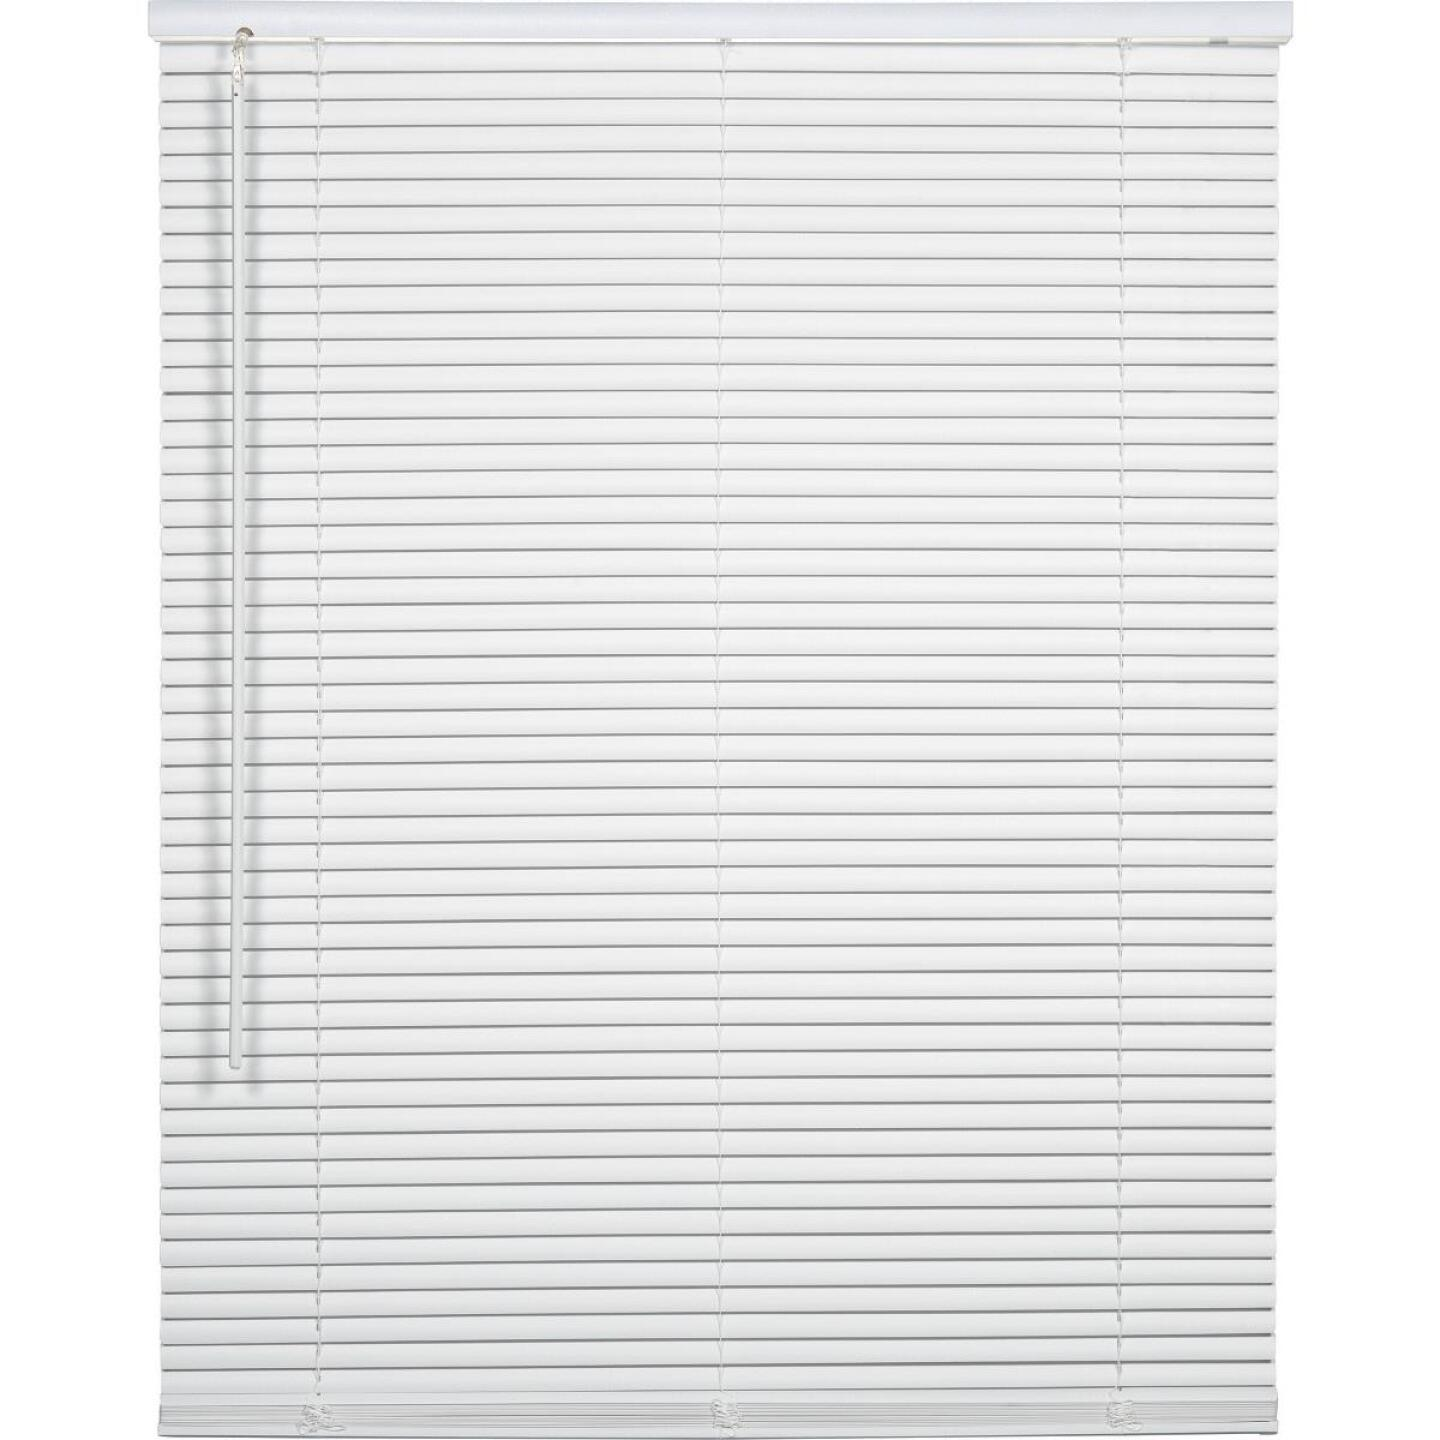 Home Impressions 33 In. x 72 In. x 1 In. White Vinyl Light Filtering Cordless Mini Blind Image 1